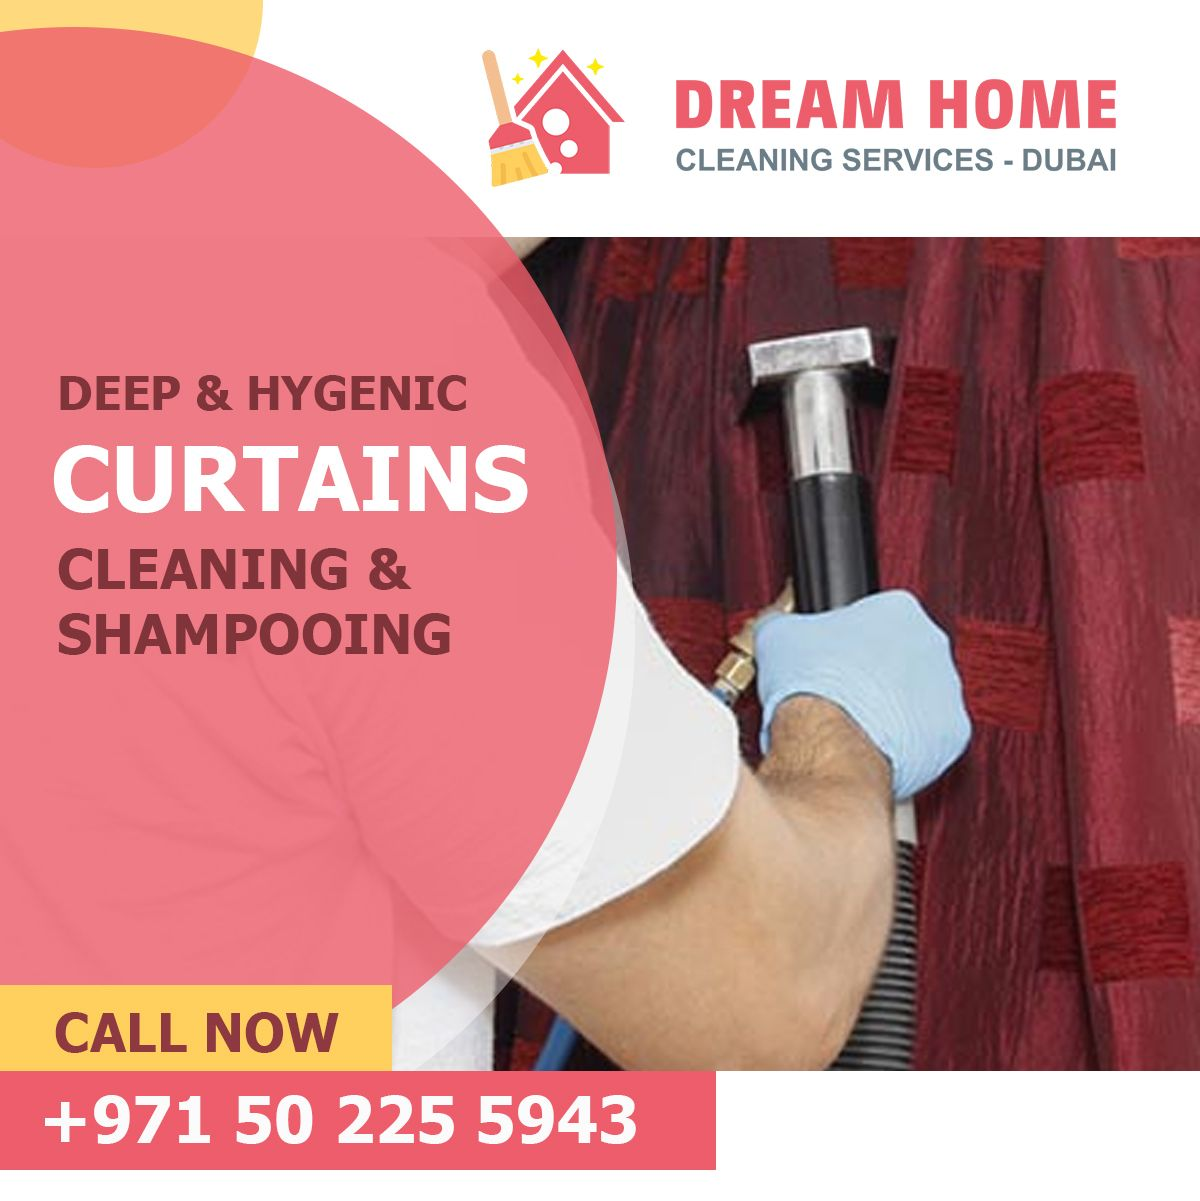 curtains cleaning and shampooing in dubai dream home cleaning rh pinterest com